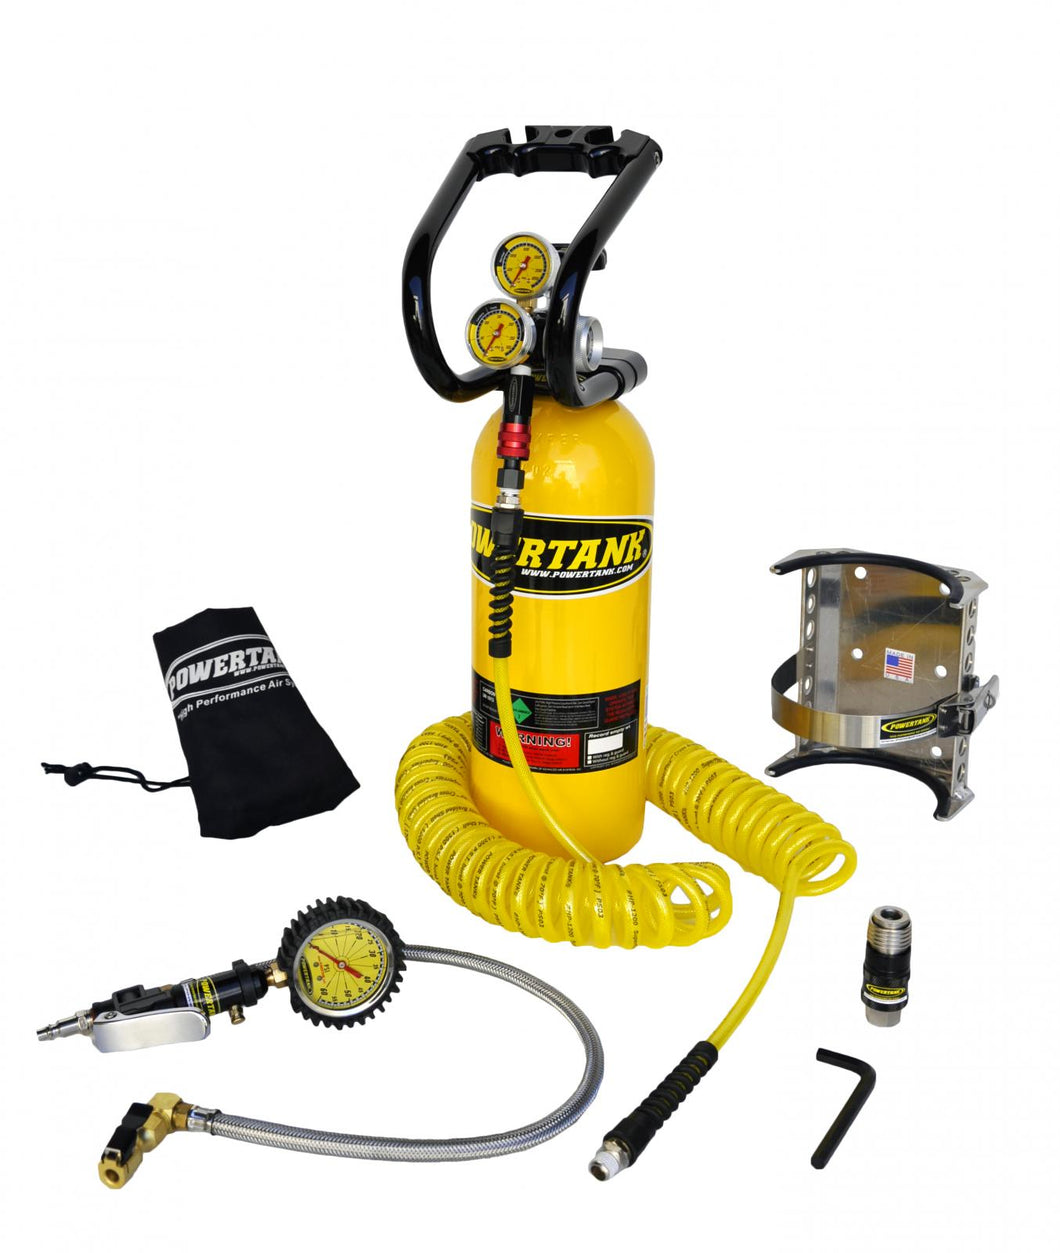 CO2 Tank 5 LB Power Tank Package B System 250 PSI Team Yellow Power Tank